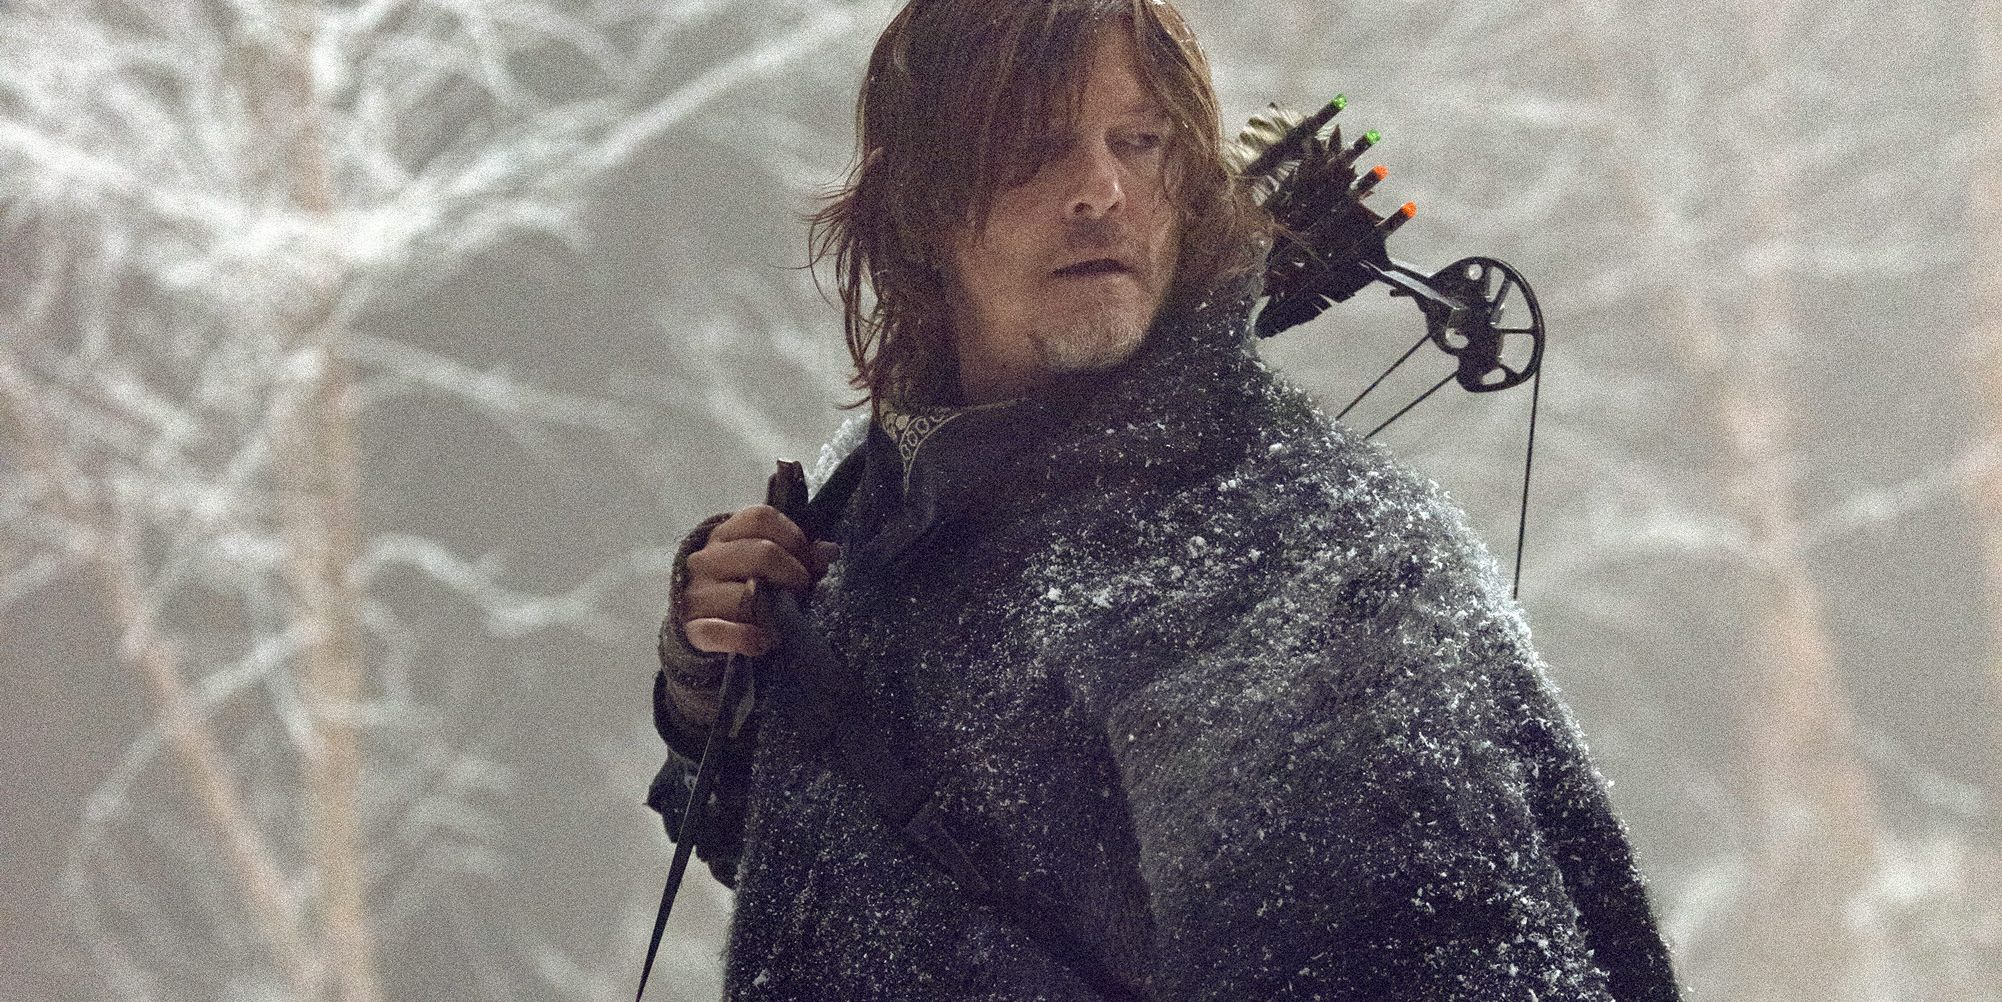 Norman Reedus as Daryl Dixon, The Walking Dead, s9 finale